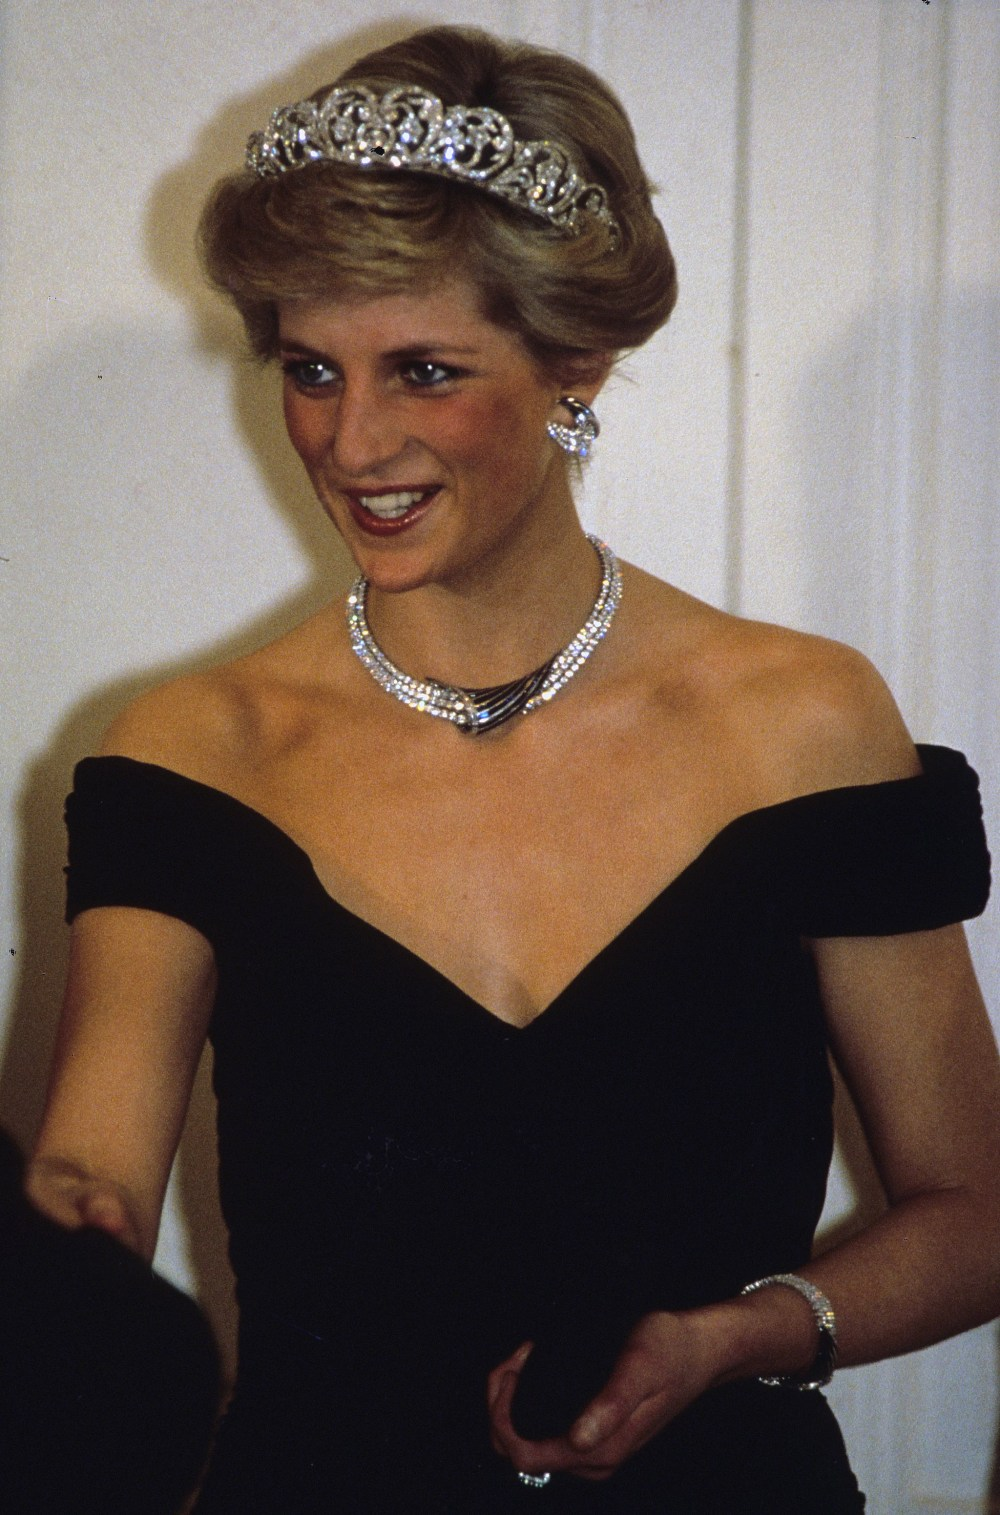 BONN, GERMANY - NOVEMBER 02:  Diana, Princess of Wales, wearing the Spencer family tiara and crescent shaped diamond and sapphire earring, necklace and bracelet given to her by the Sultan of Oman and a dress designed by Victor Edelstein, attends a banquet on November 02, 1987 in Bonn, Germany (Photo by Anwar Hussein/Getty Images)